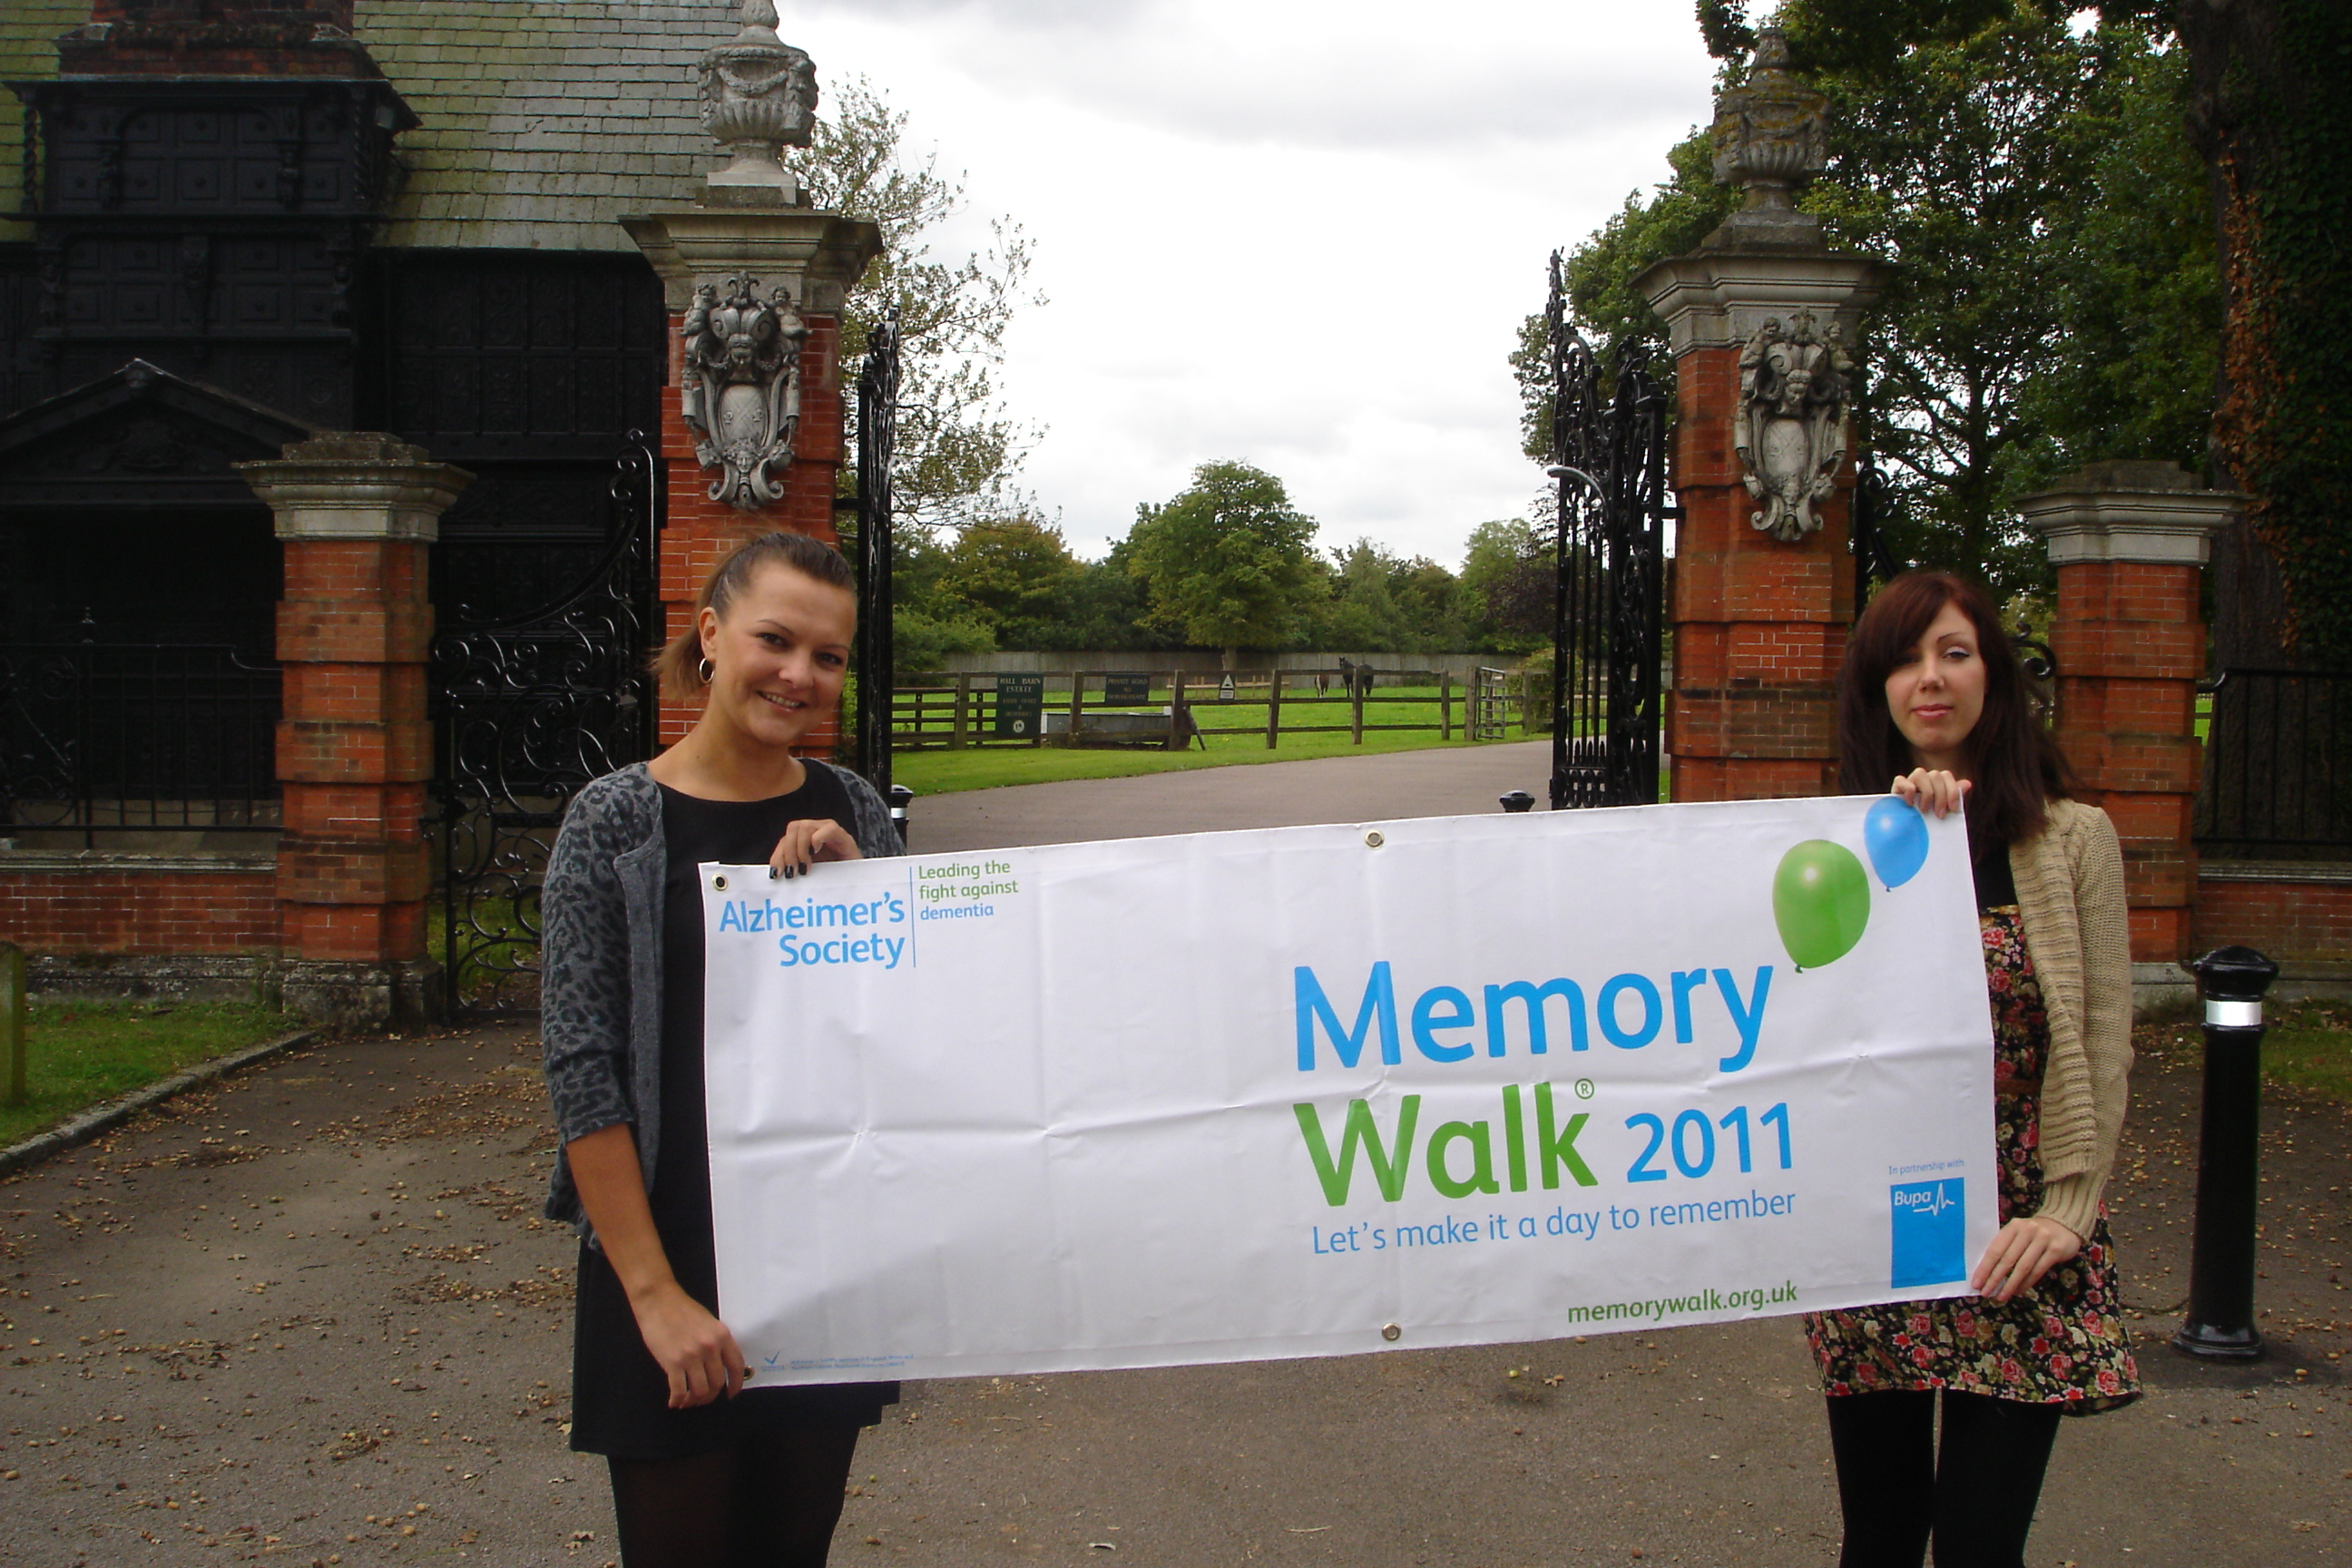 Home Instead South Buckinghamshire team members Zoe Smith and Vicky Swanwick holding the Memory Walk 2011 poster